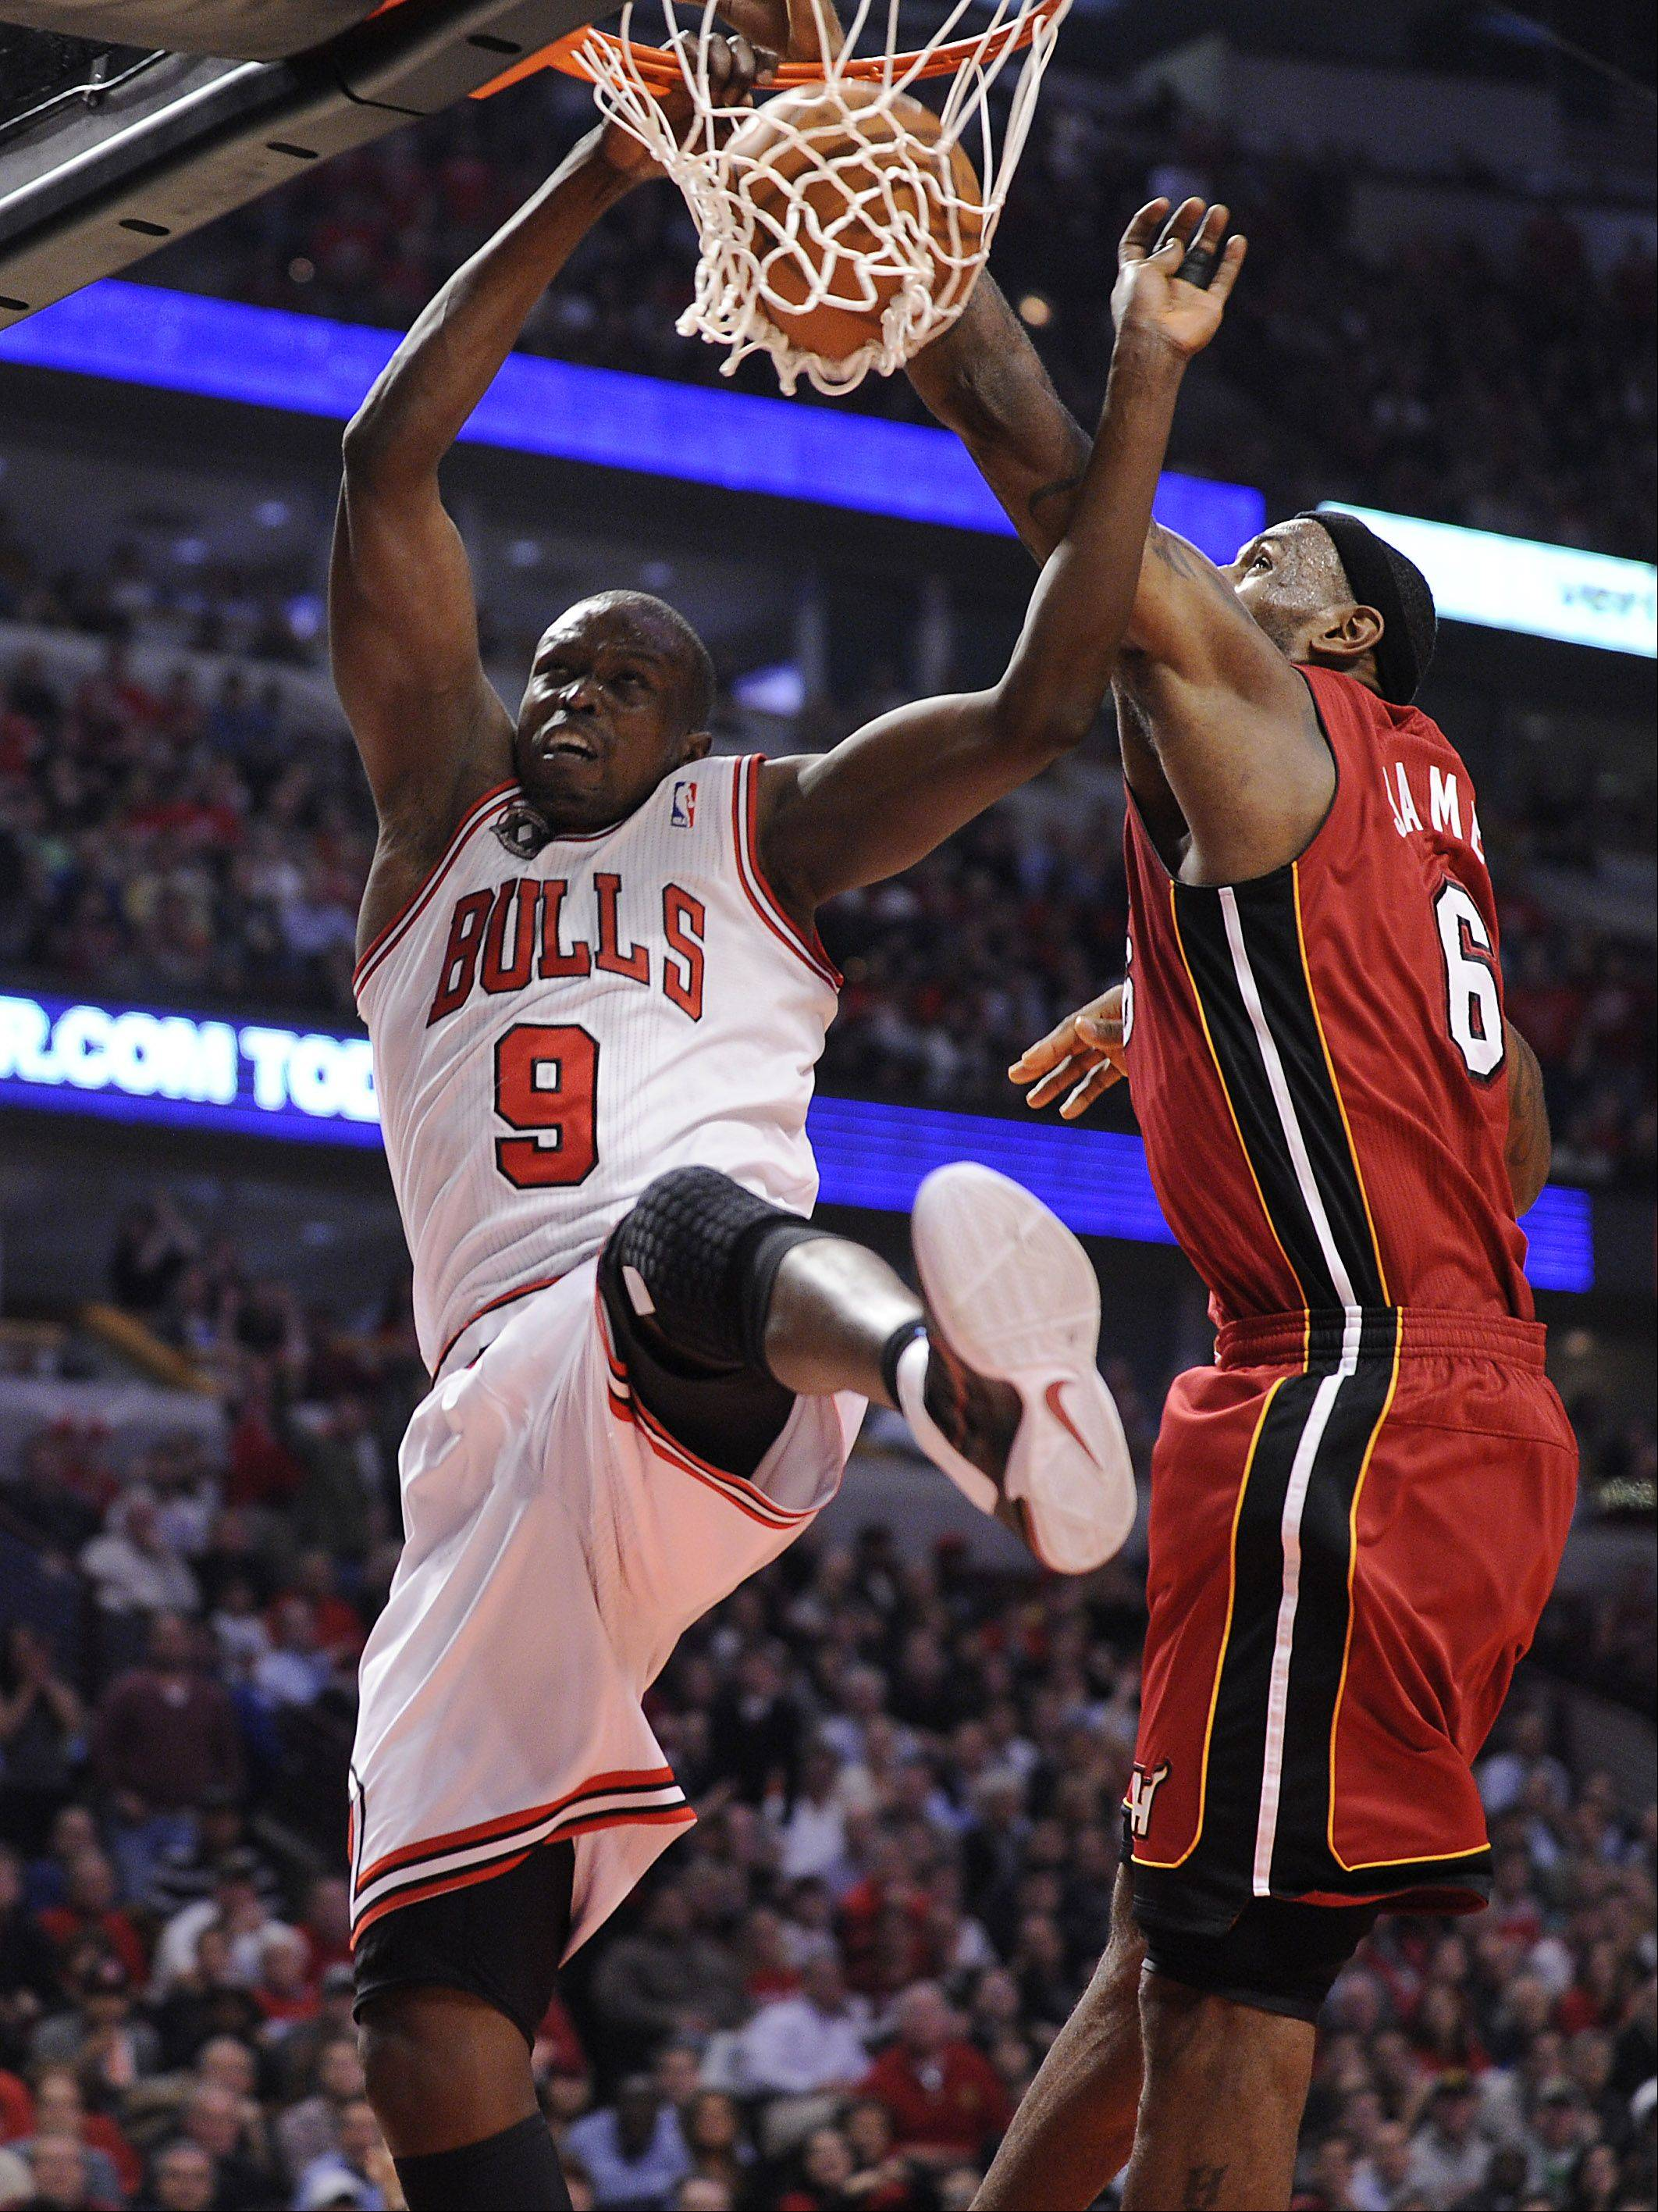 Bulls Luoi Deng slams two points home against the Heat's LeBron James in the first half of game five of the playoffs at the United Center on Thursday.